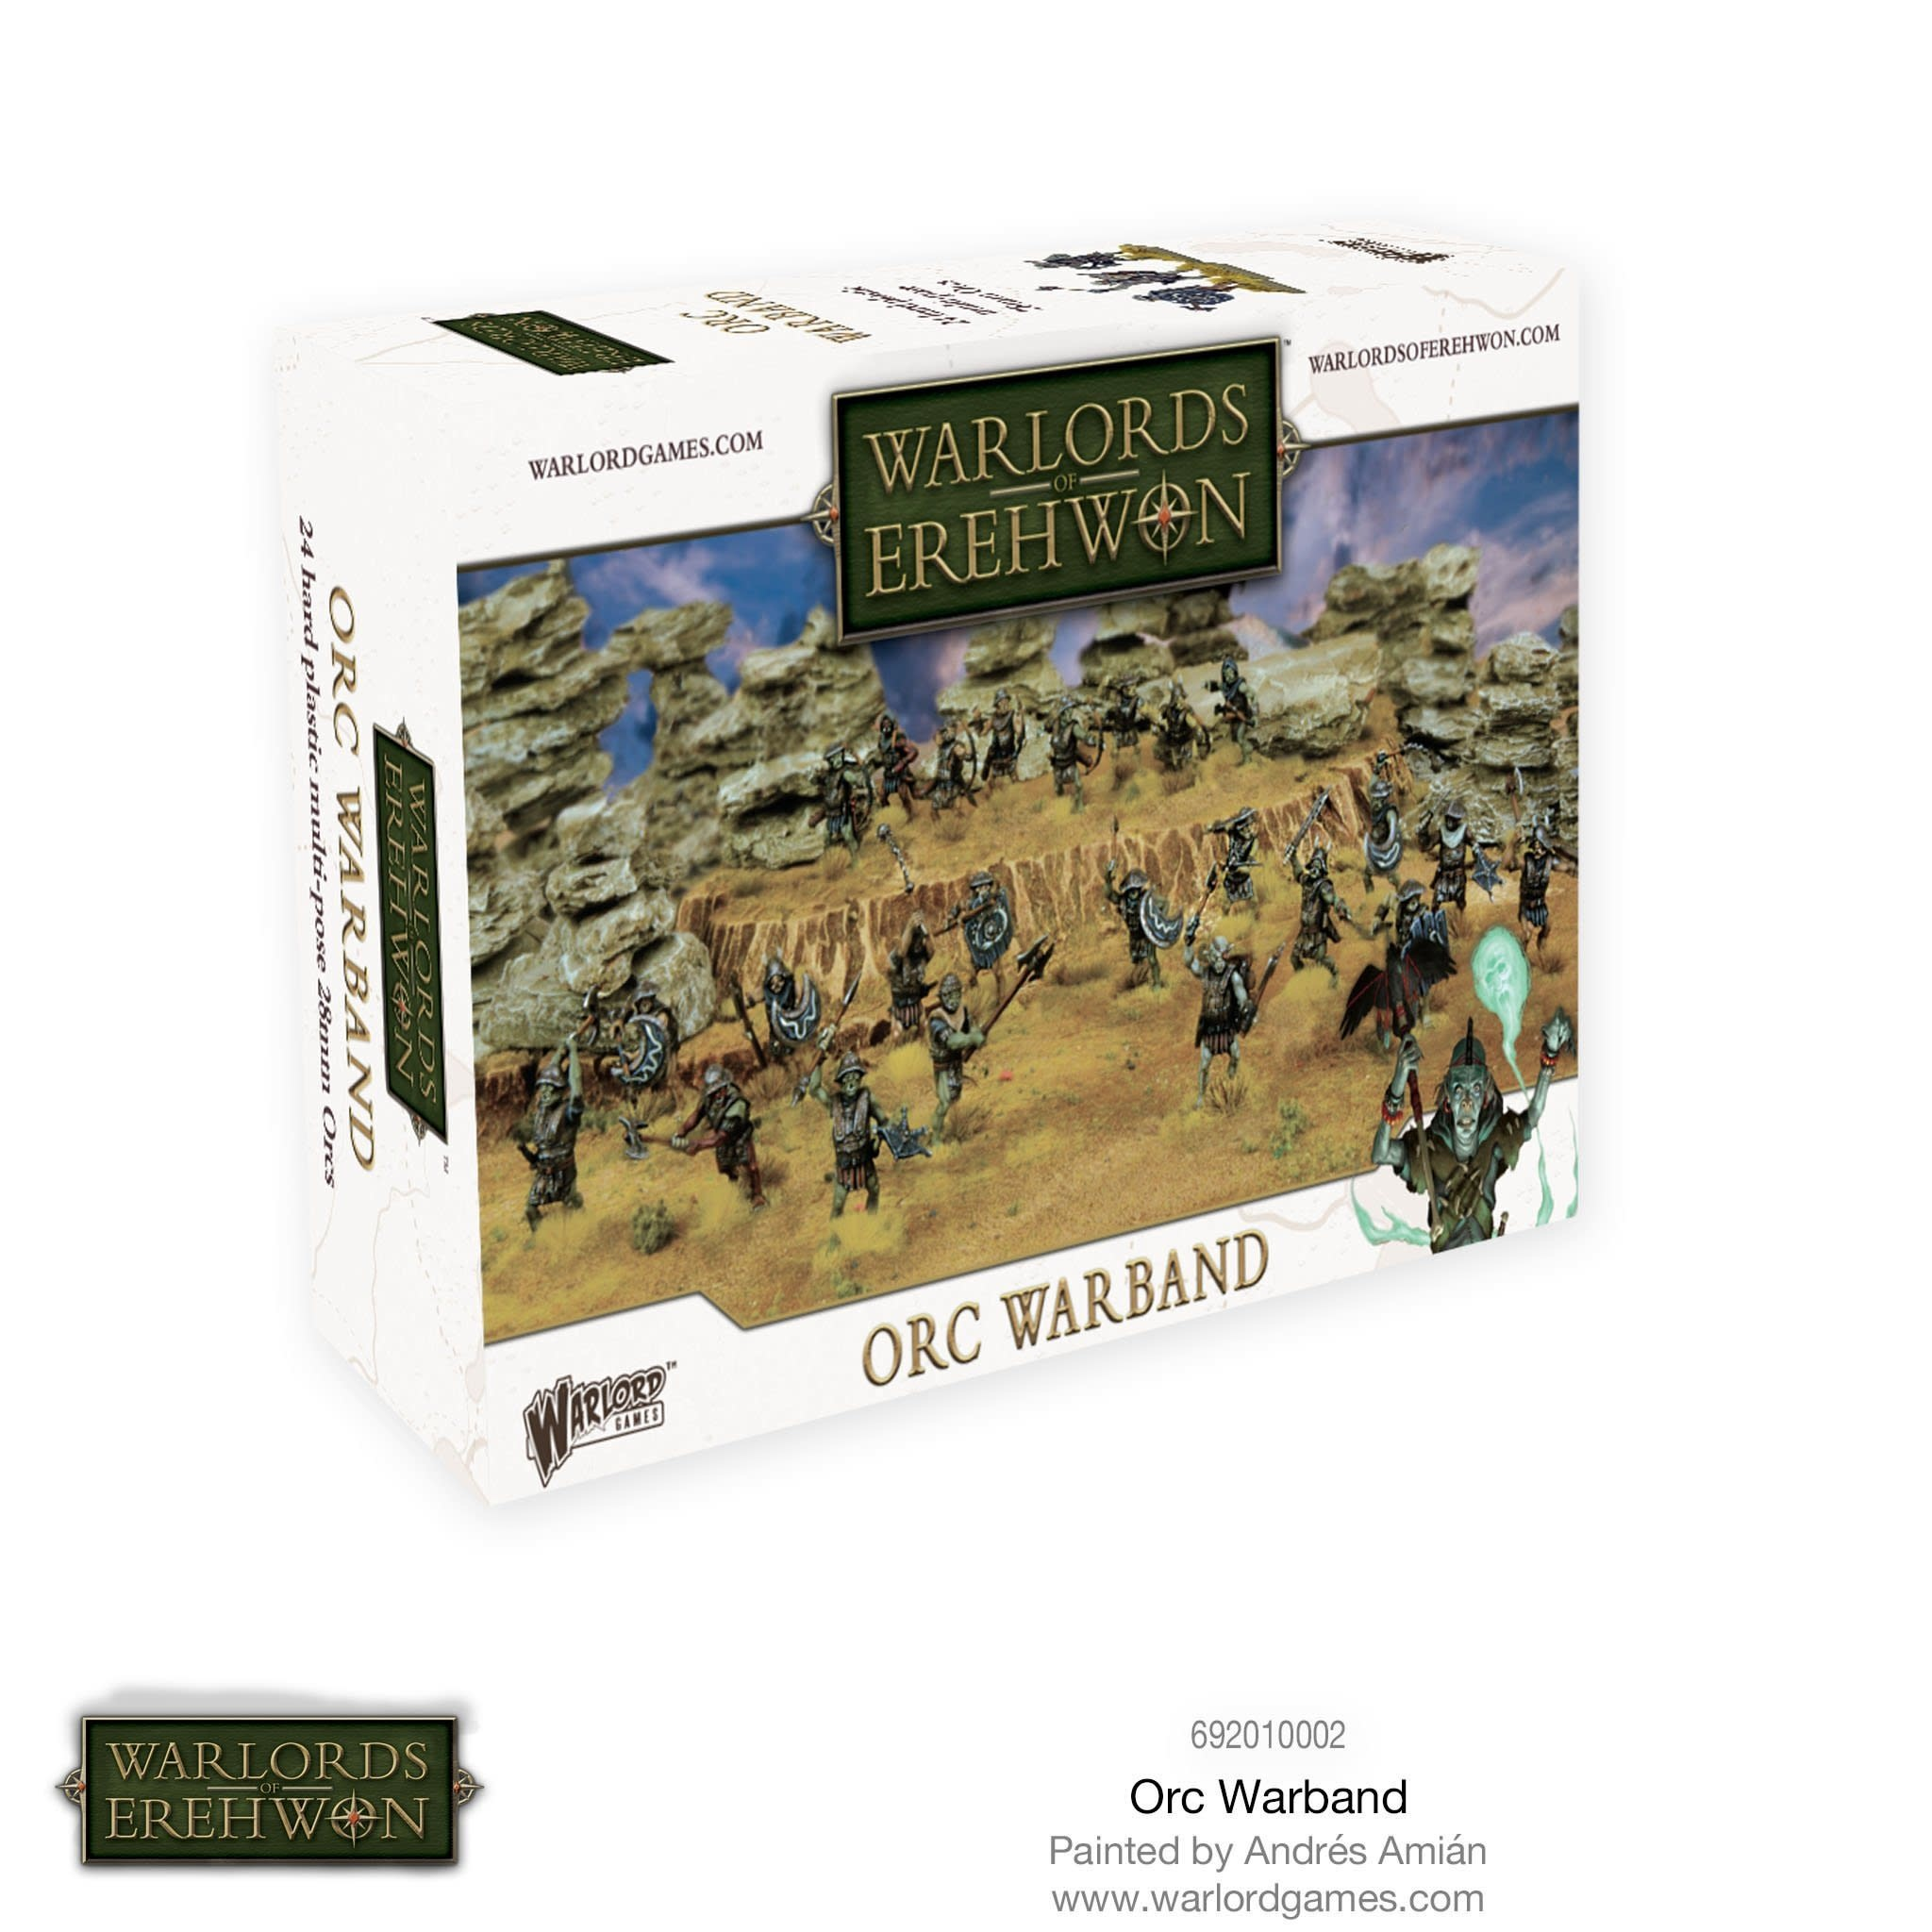 Warlord games Warlords of Erehwon: Orc Warband